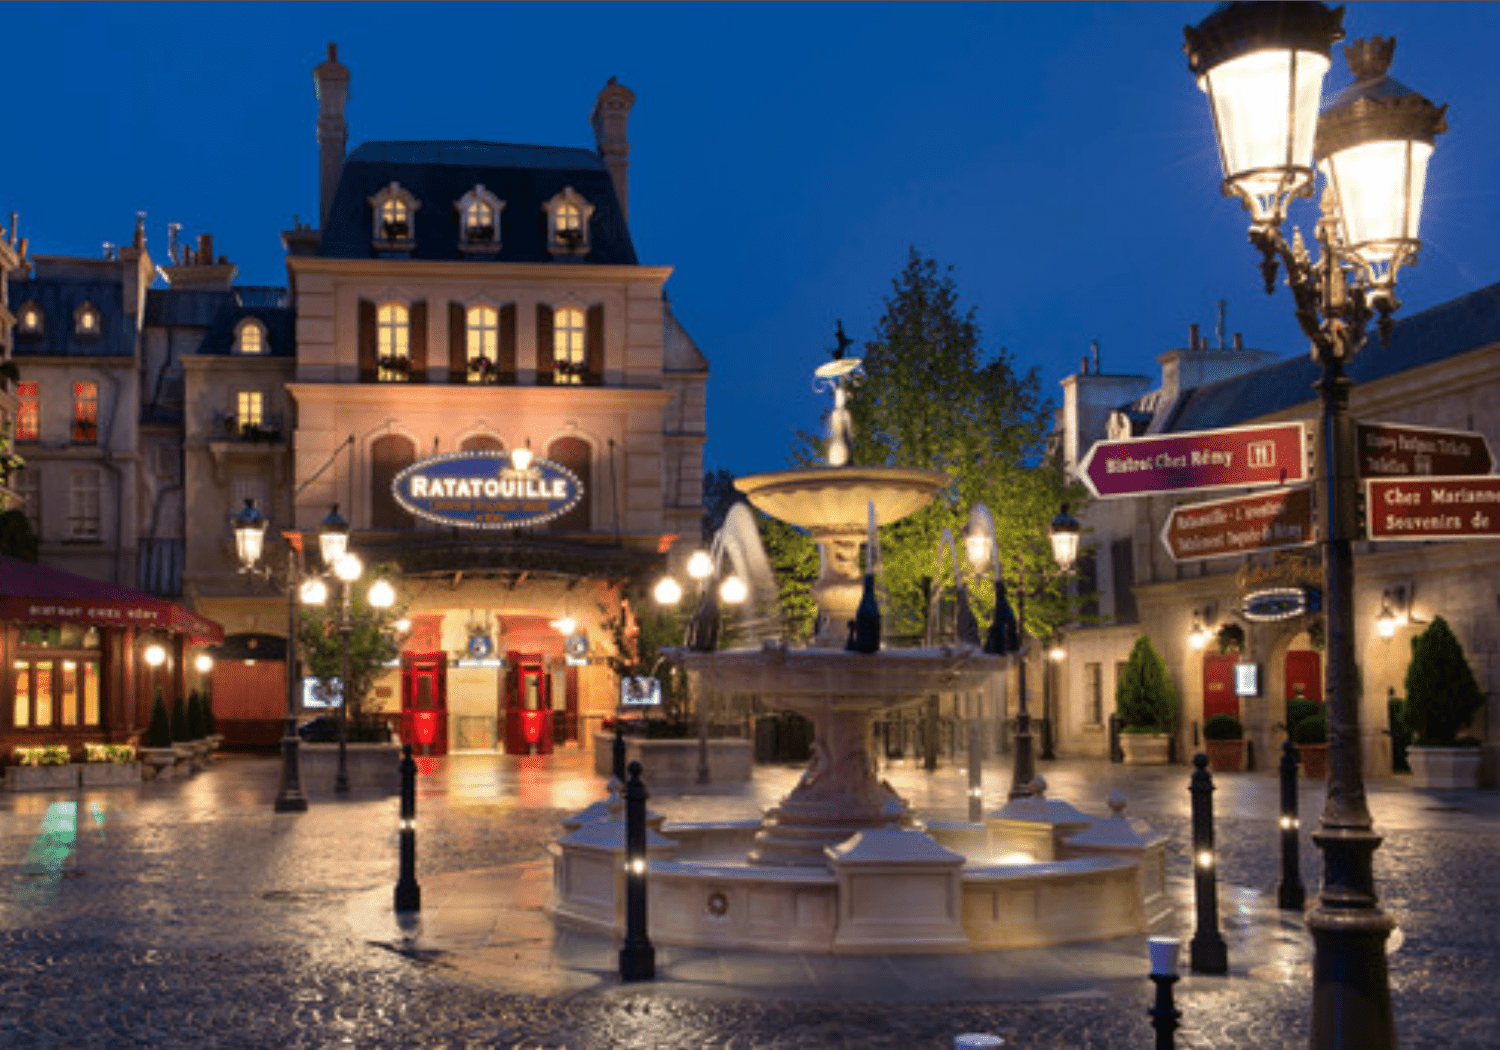 Ratatouille The Adventure At Disneyland Paris